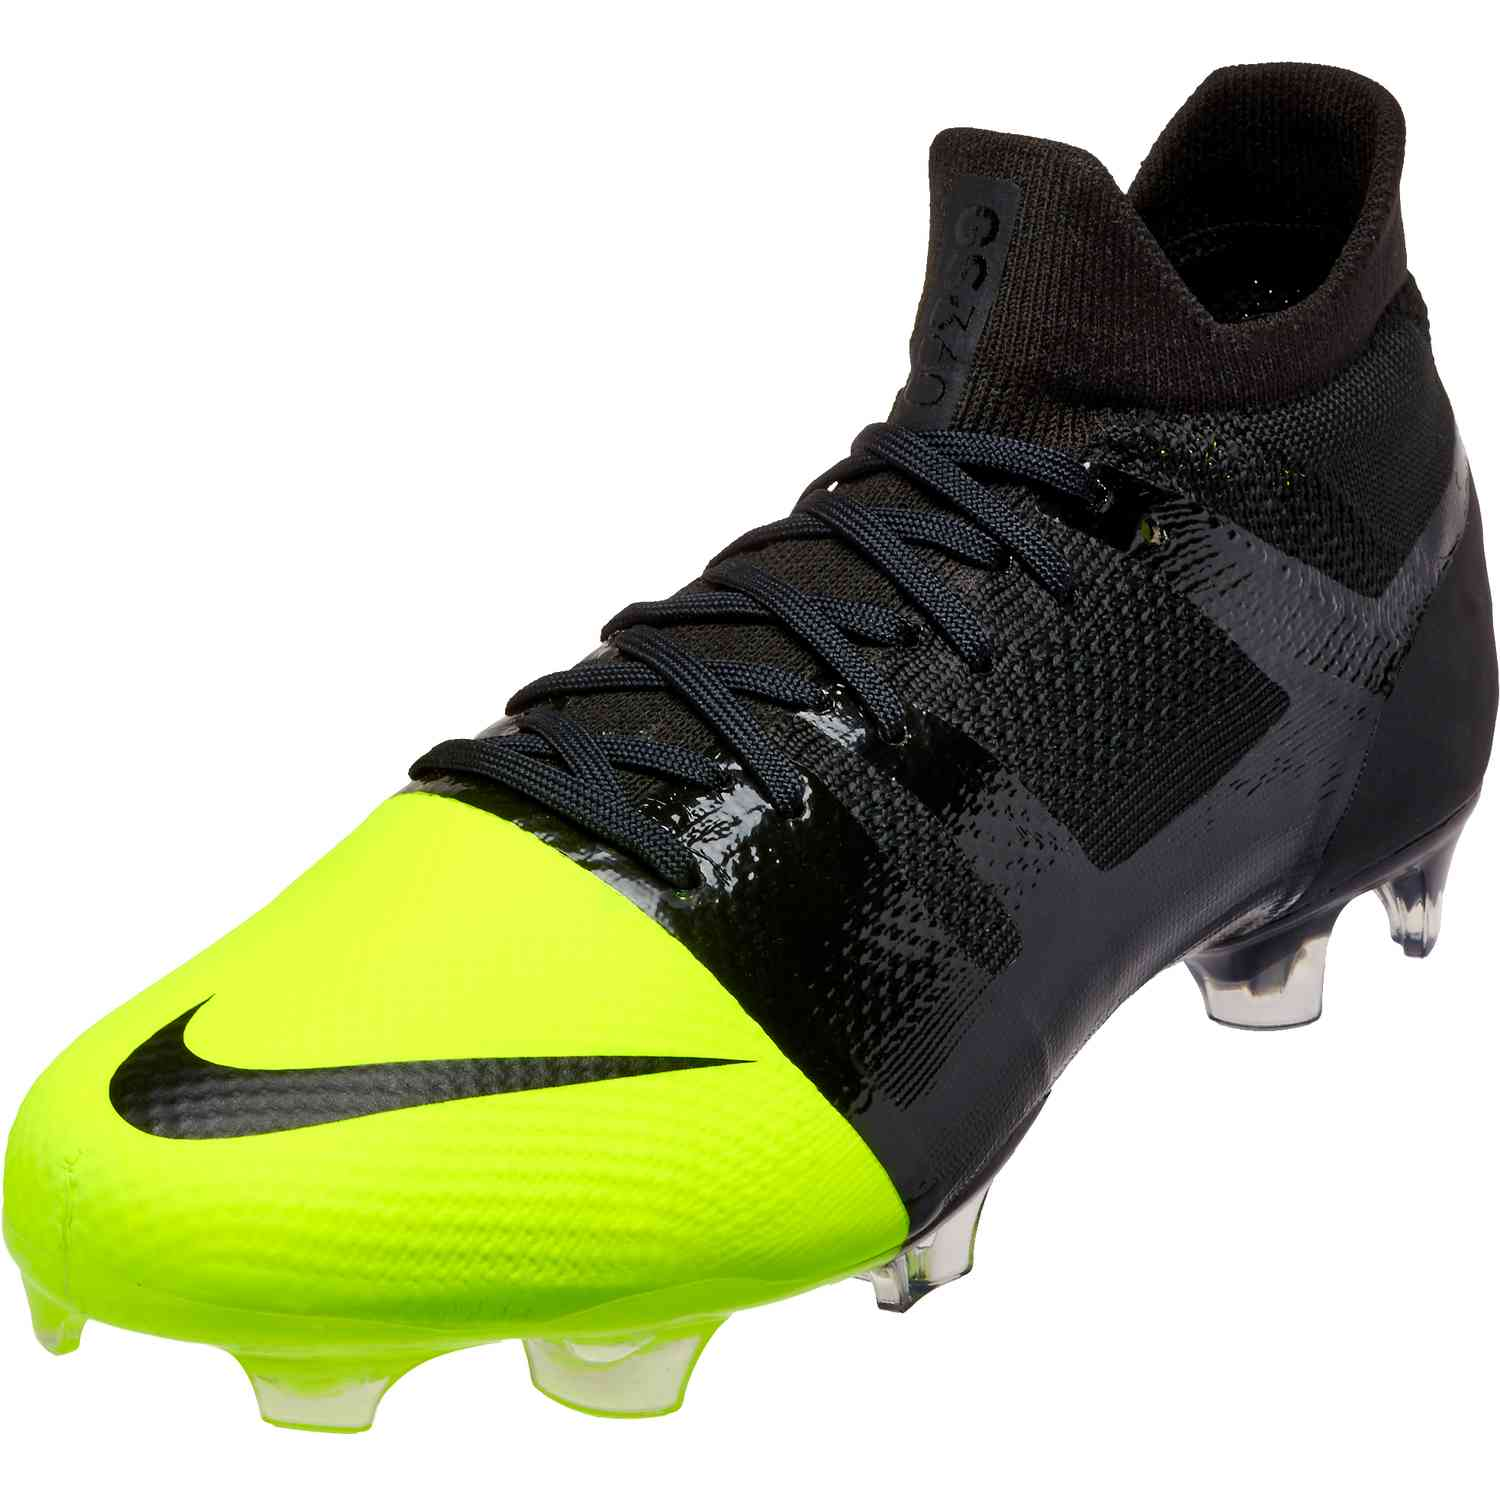 0e461db23a7 Nike Mercurial Greenspeed 360 FG – Black Metallic Silver Volt